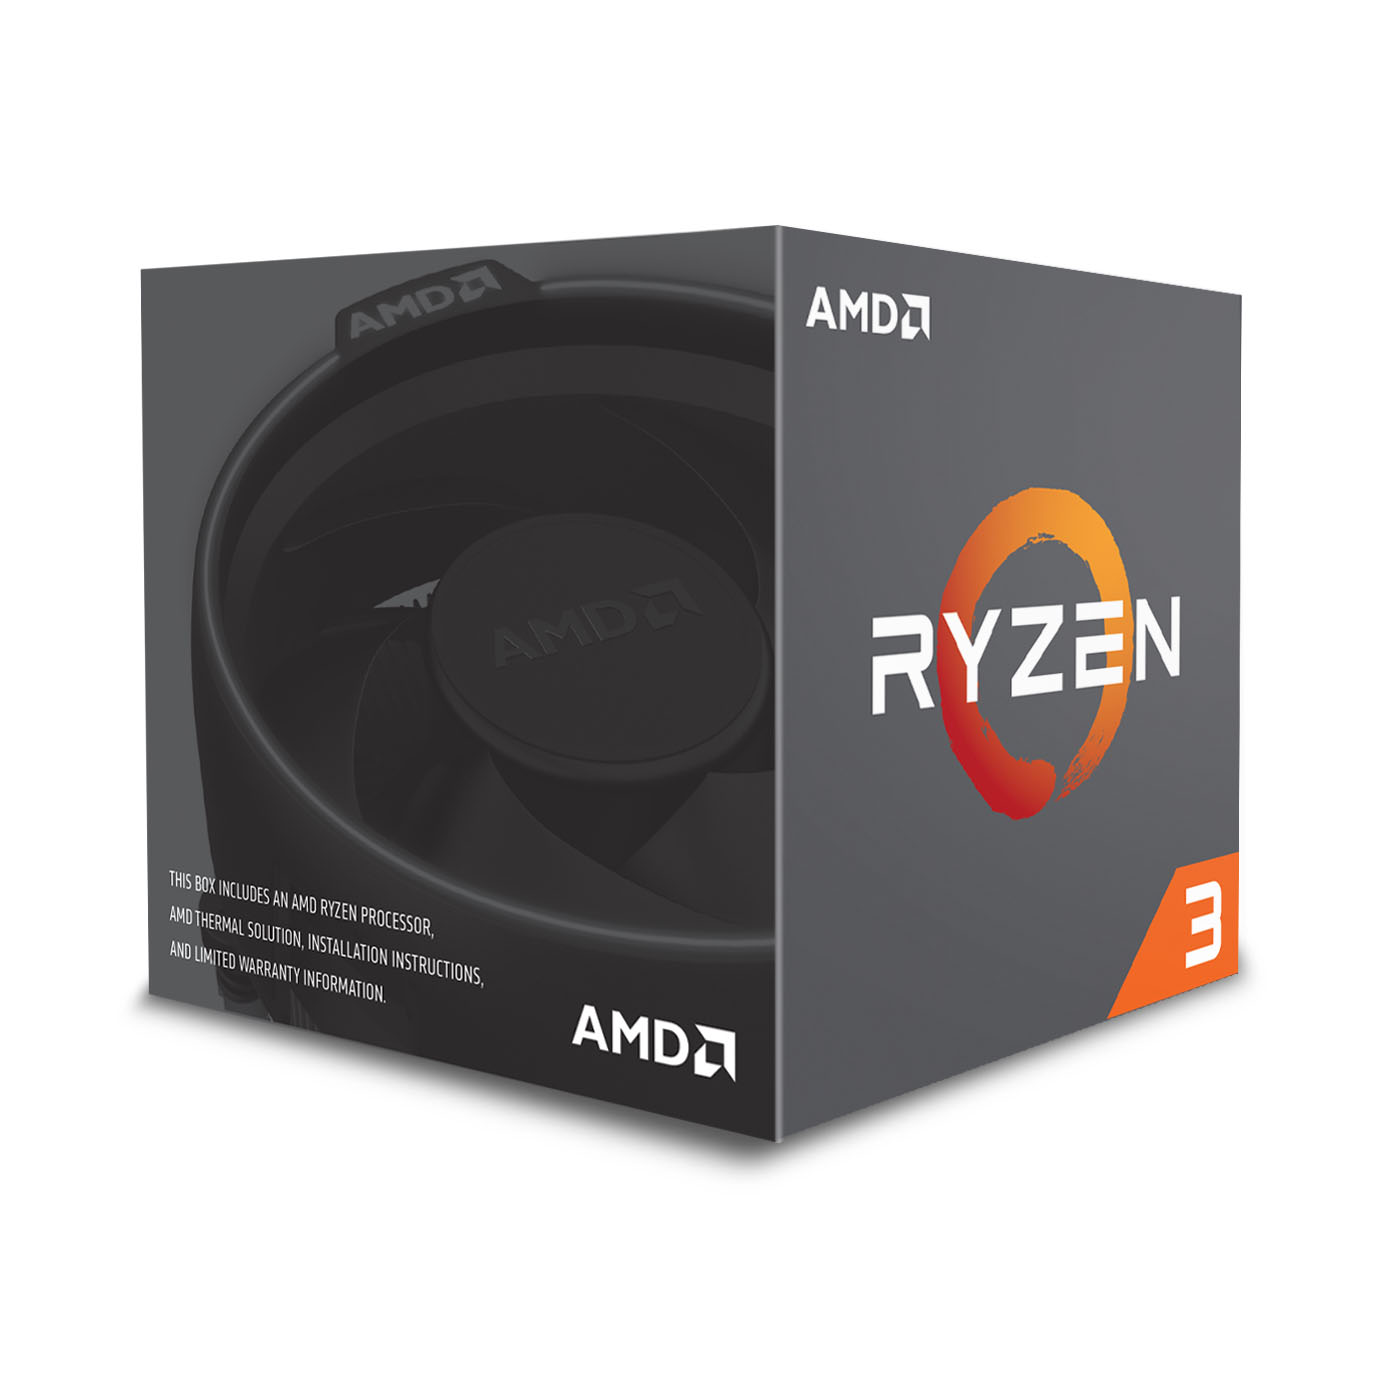 cpu_amd-ryzen3-1200_1.jpg